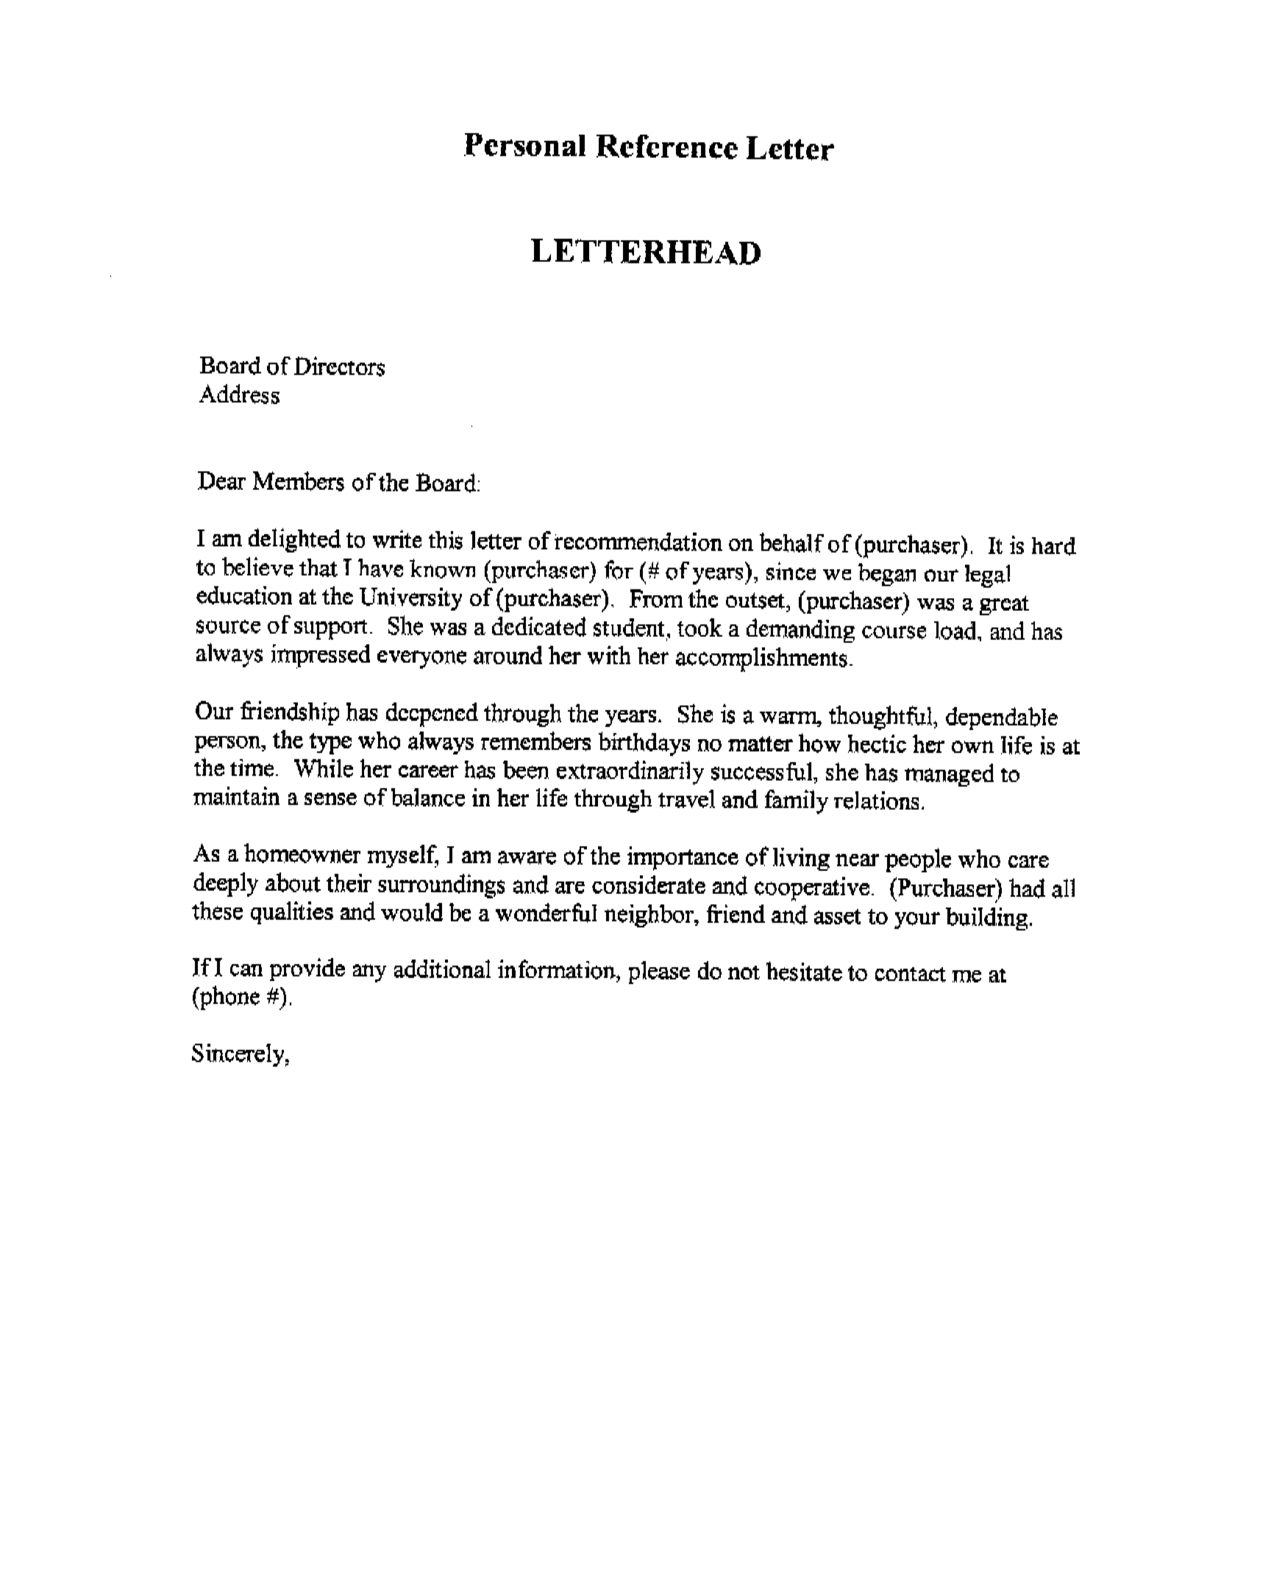 Professional recommendation letter this is an example of a professional recommendation letter this is an example of a professional recommendation written for an employee spiritdancerdesigns Gallery